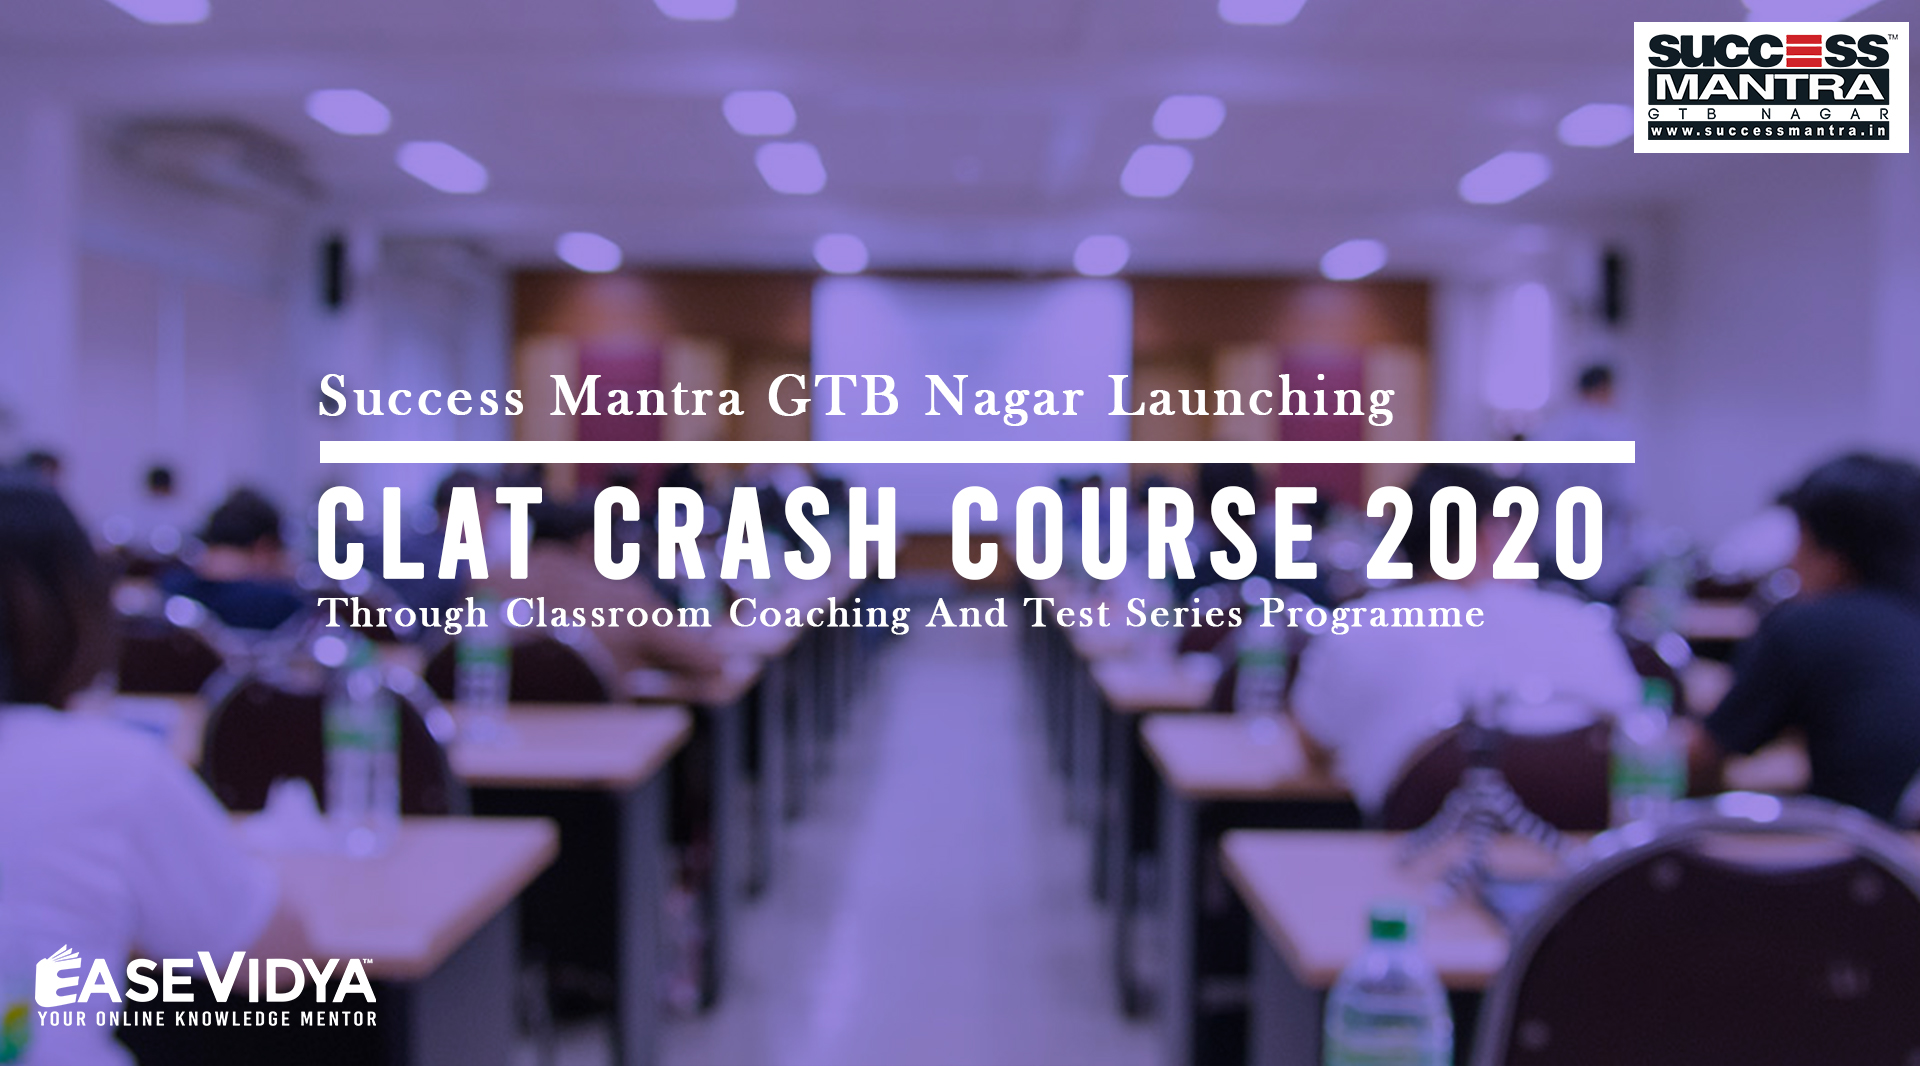 Open Free Counseling Sessions On How To Clear CLAT 2020, CLAT coaching in Delhi, crash course for CLAT, short term crash course, CLAT counselling 2020, CLAT 2020 syllabus, CLAT 2020 registration, CLAT official website, www.clat.ac.in 2020, CLAT consortium, CLAT 2020 form